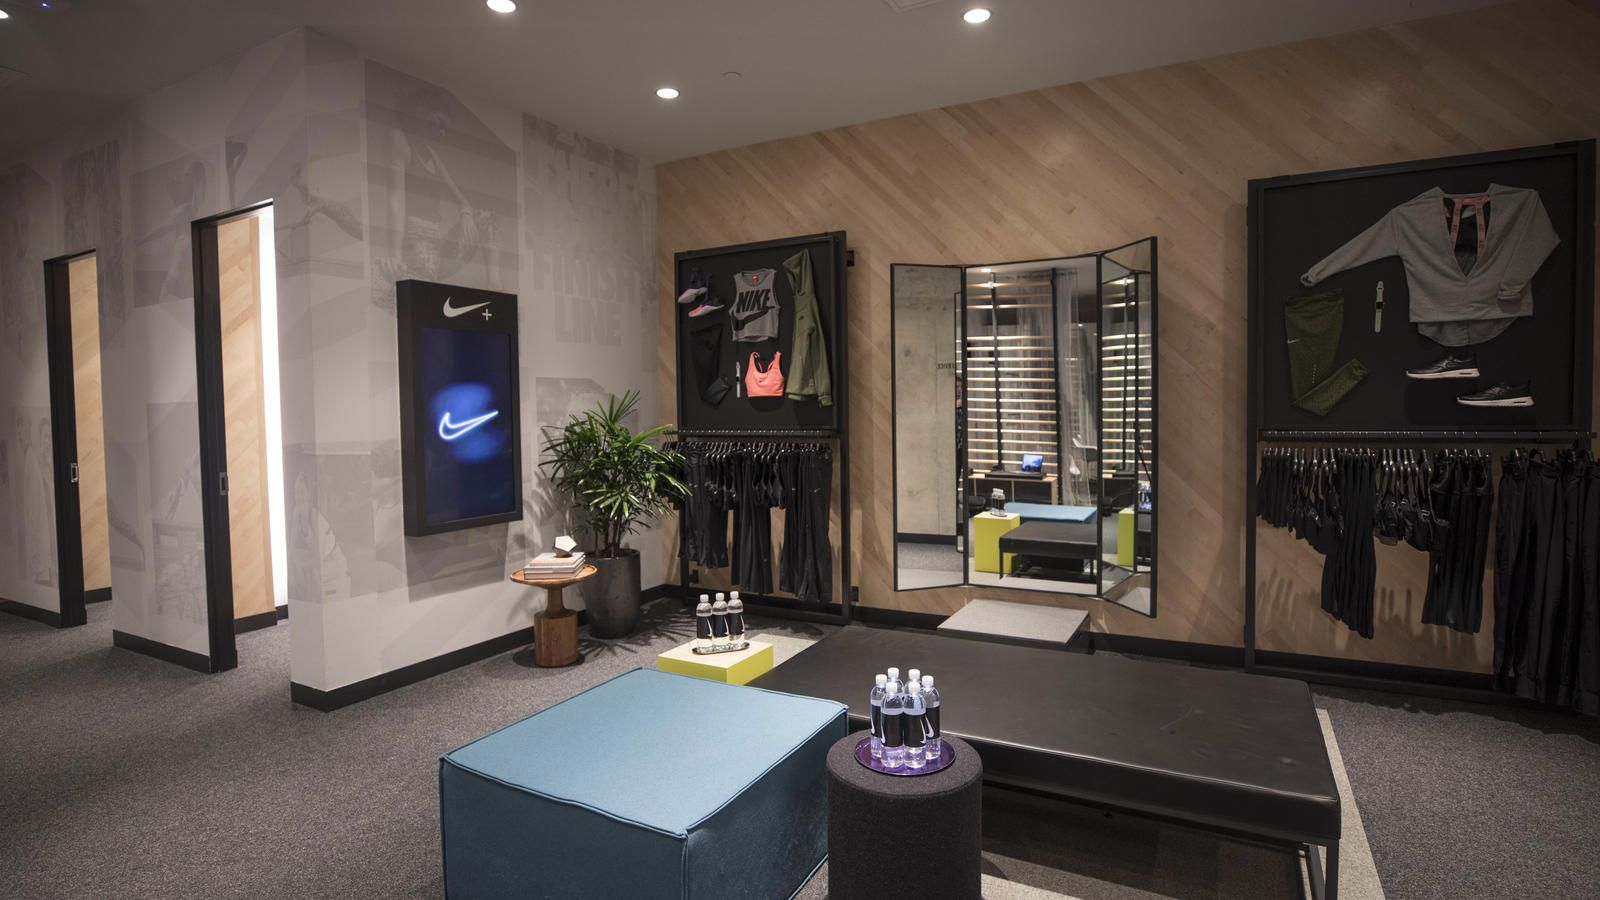 parrilla Perfecto siga adelante  First Look: Inside Nike Miami | Retail interior, Nike retail, Miami store